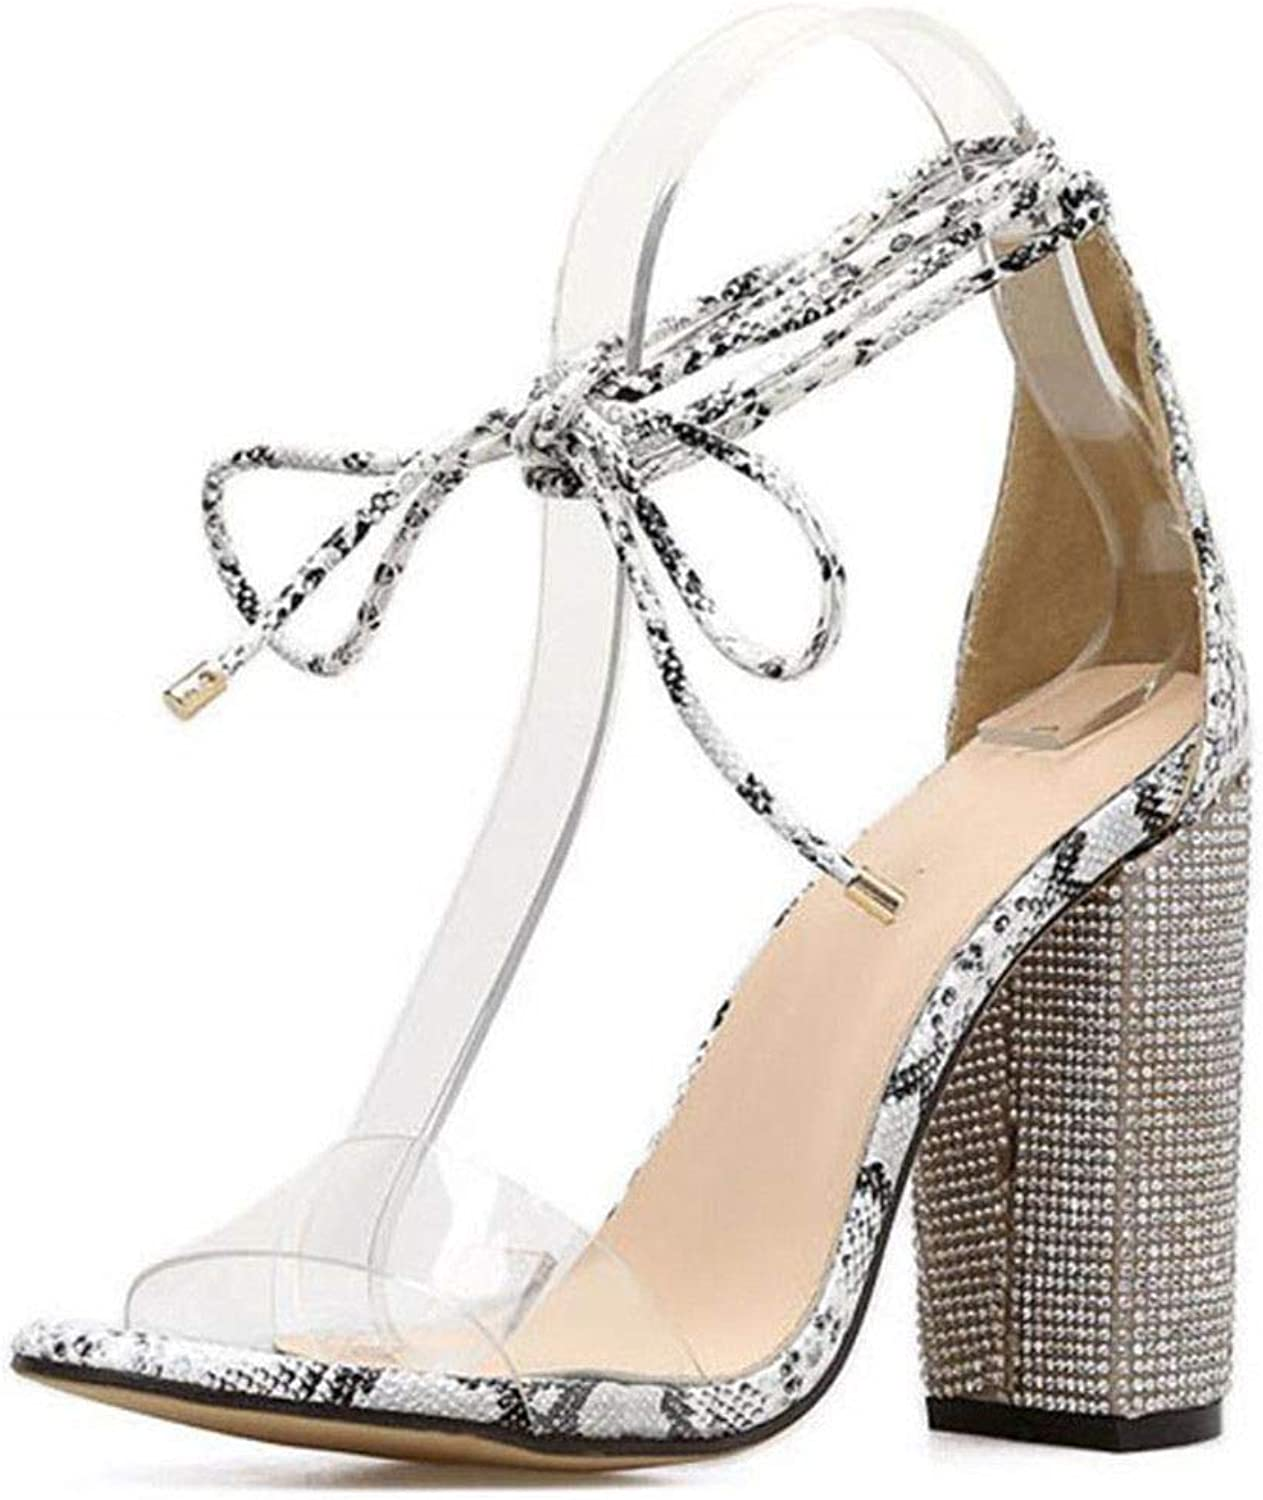 Platform shoes Aneikeh Women High Heels Sandals Summer Square Heels Crystal Heeled